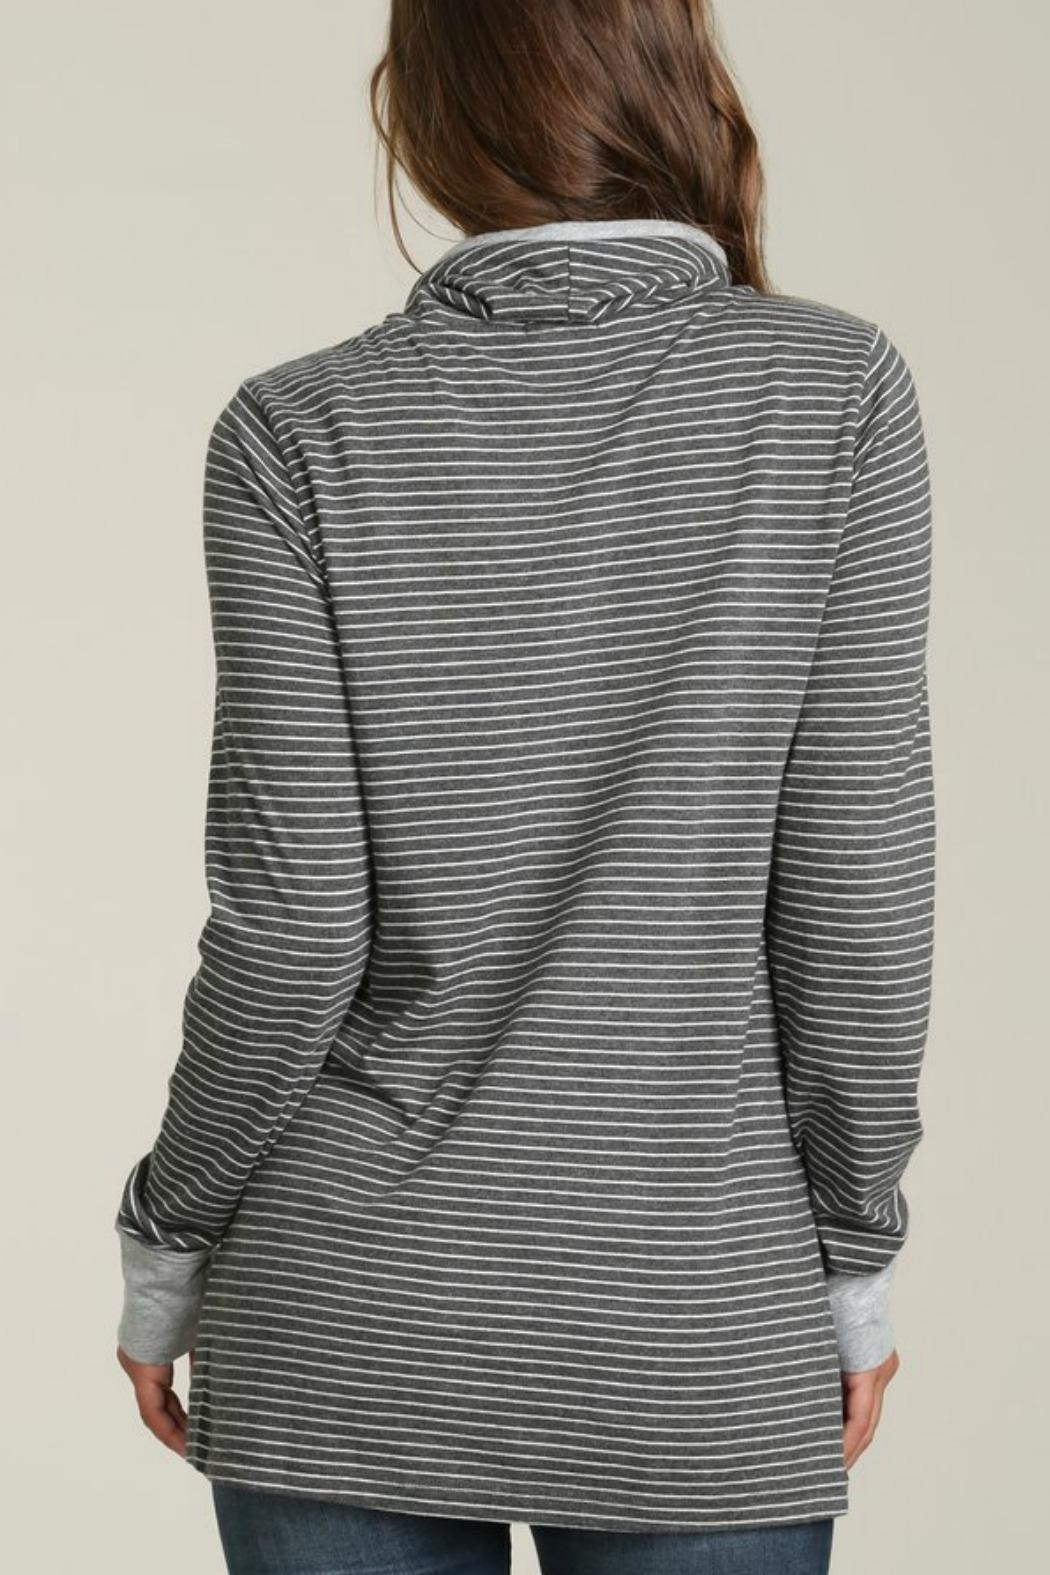 Mod-o-doc Cowl Neck Pullover Top - Front Full Image